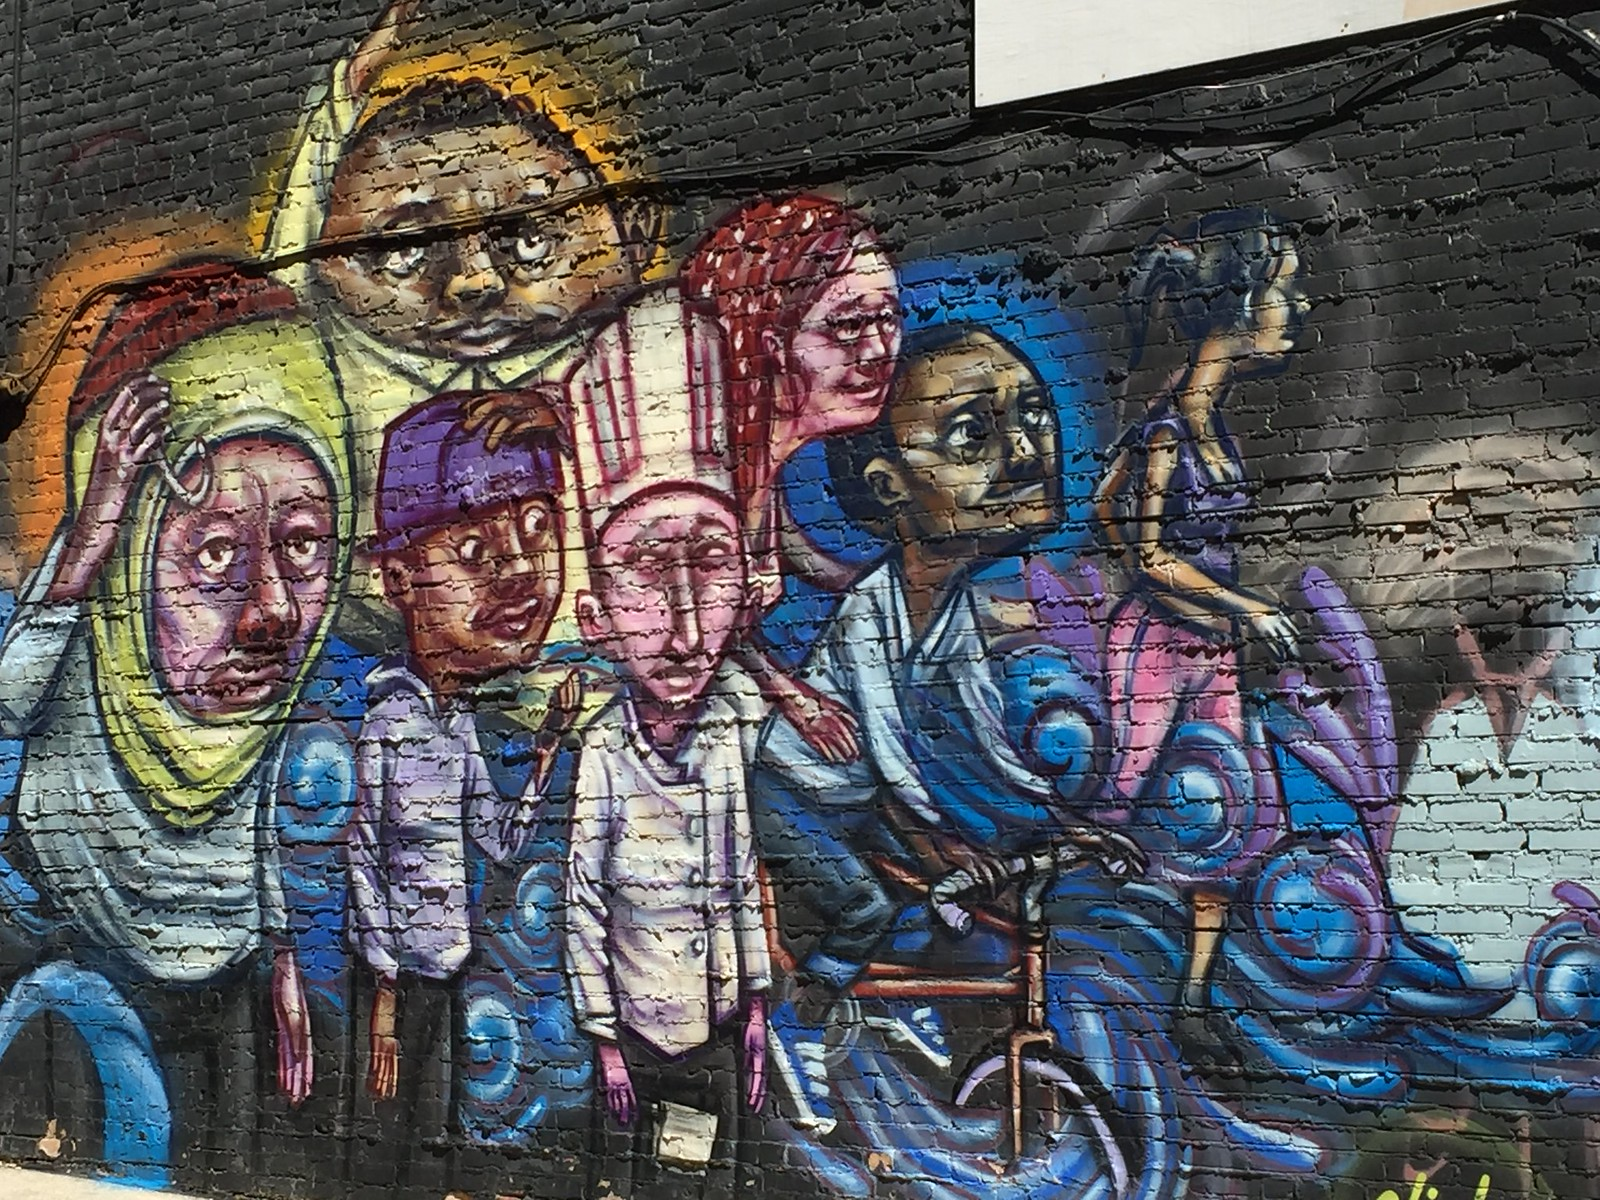 mural found in Kensington Market